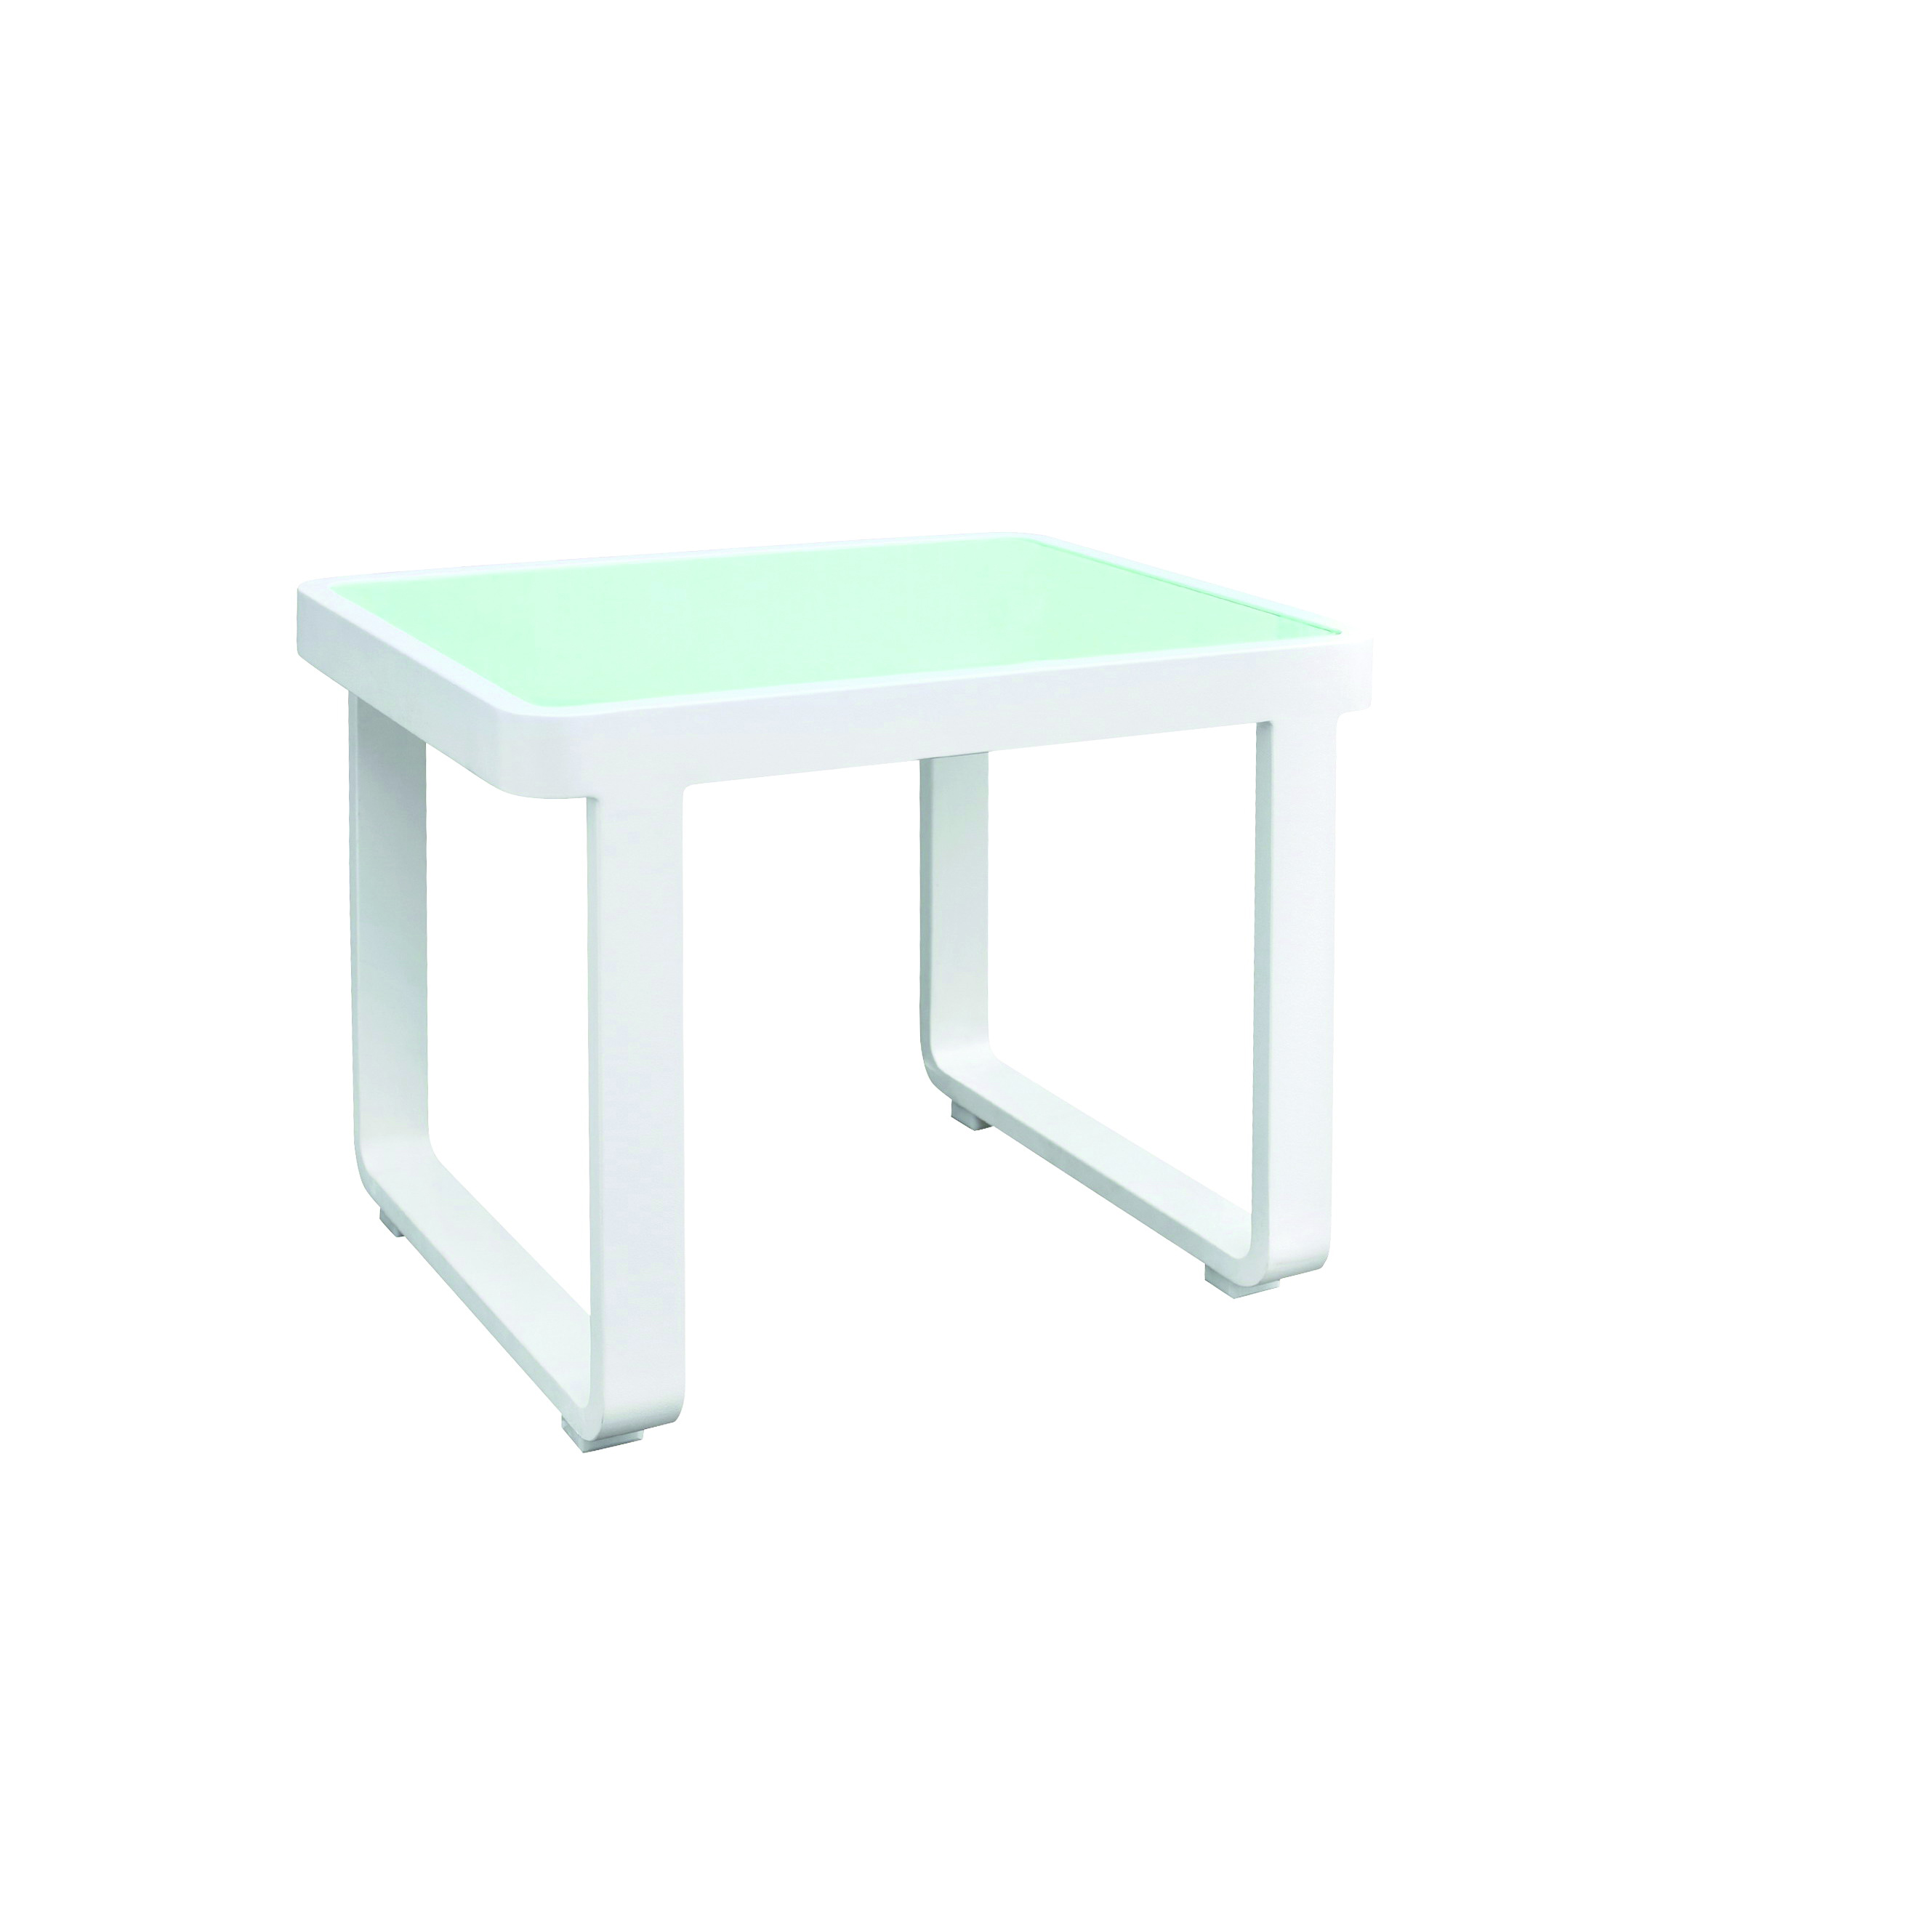 Florida Seating PB END TABLE W/GLASS sofa seating low table, outdoor